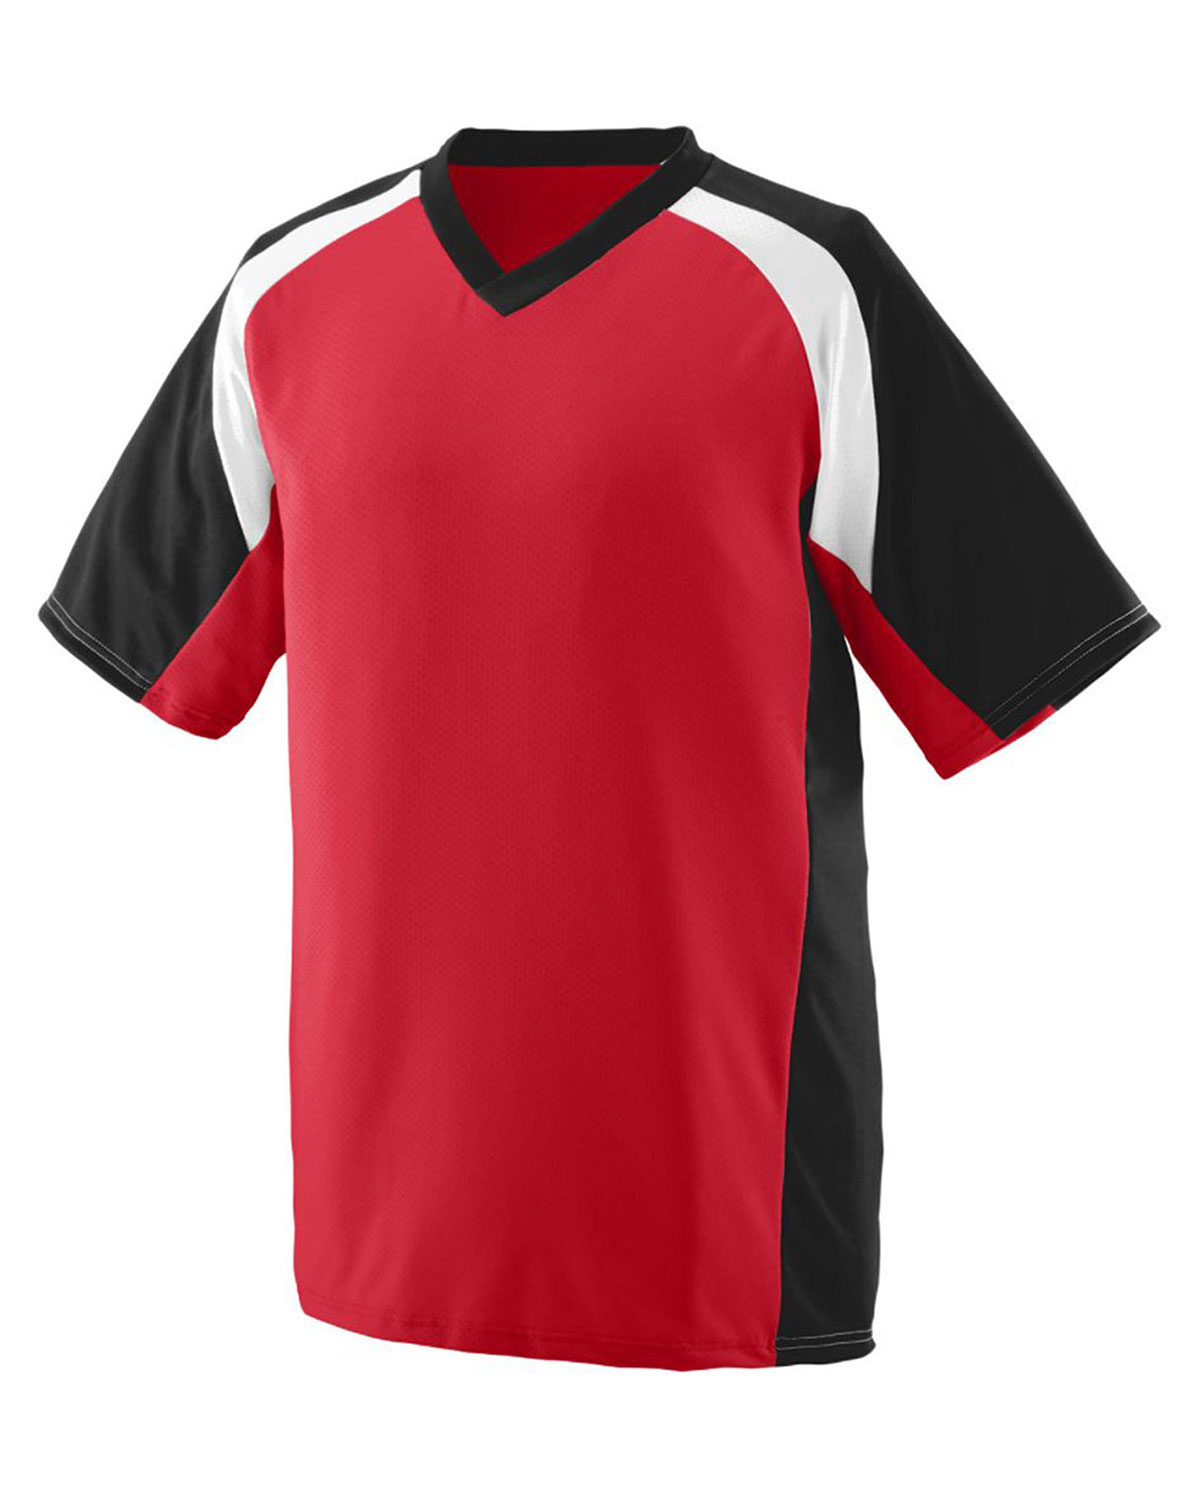 Augusta 1536 Boys Nitro Football Short Sleeve V-Neck Jersey at GotApparel